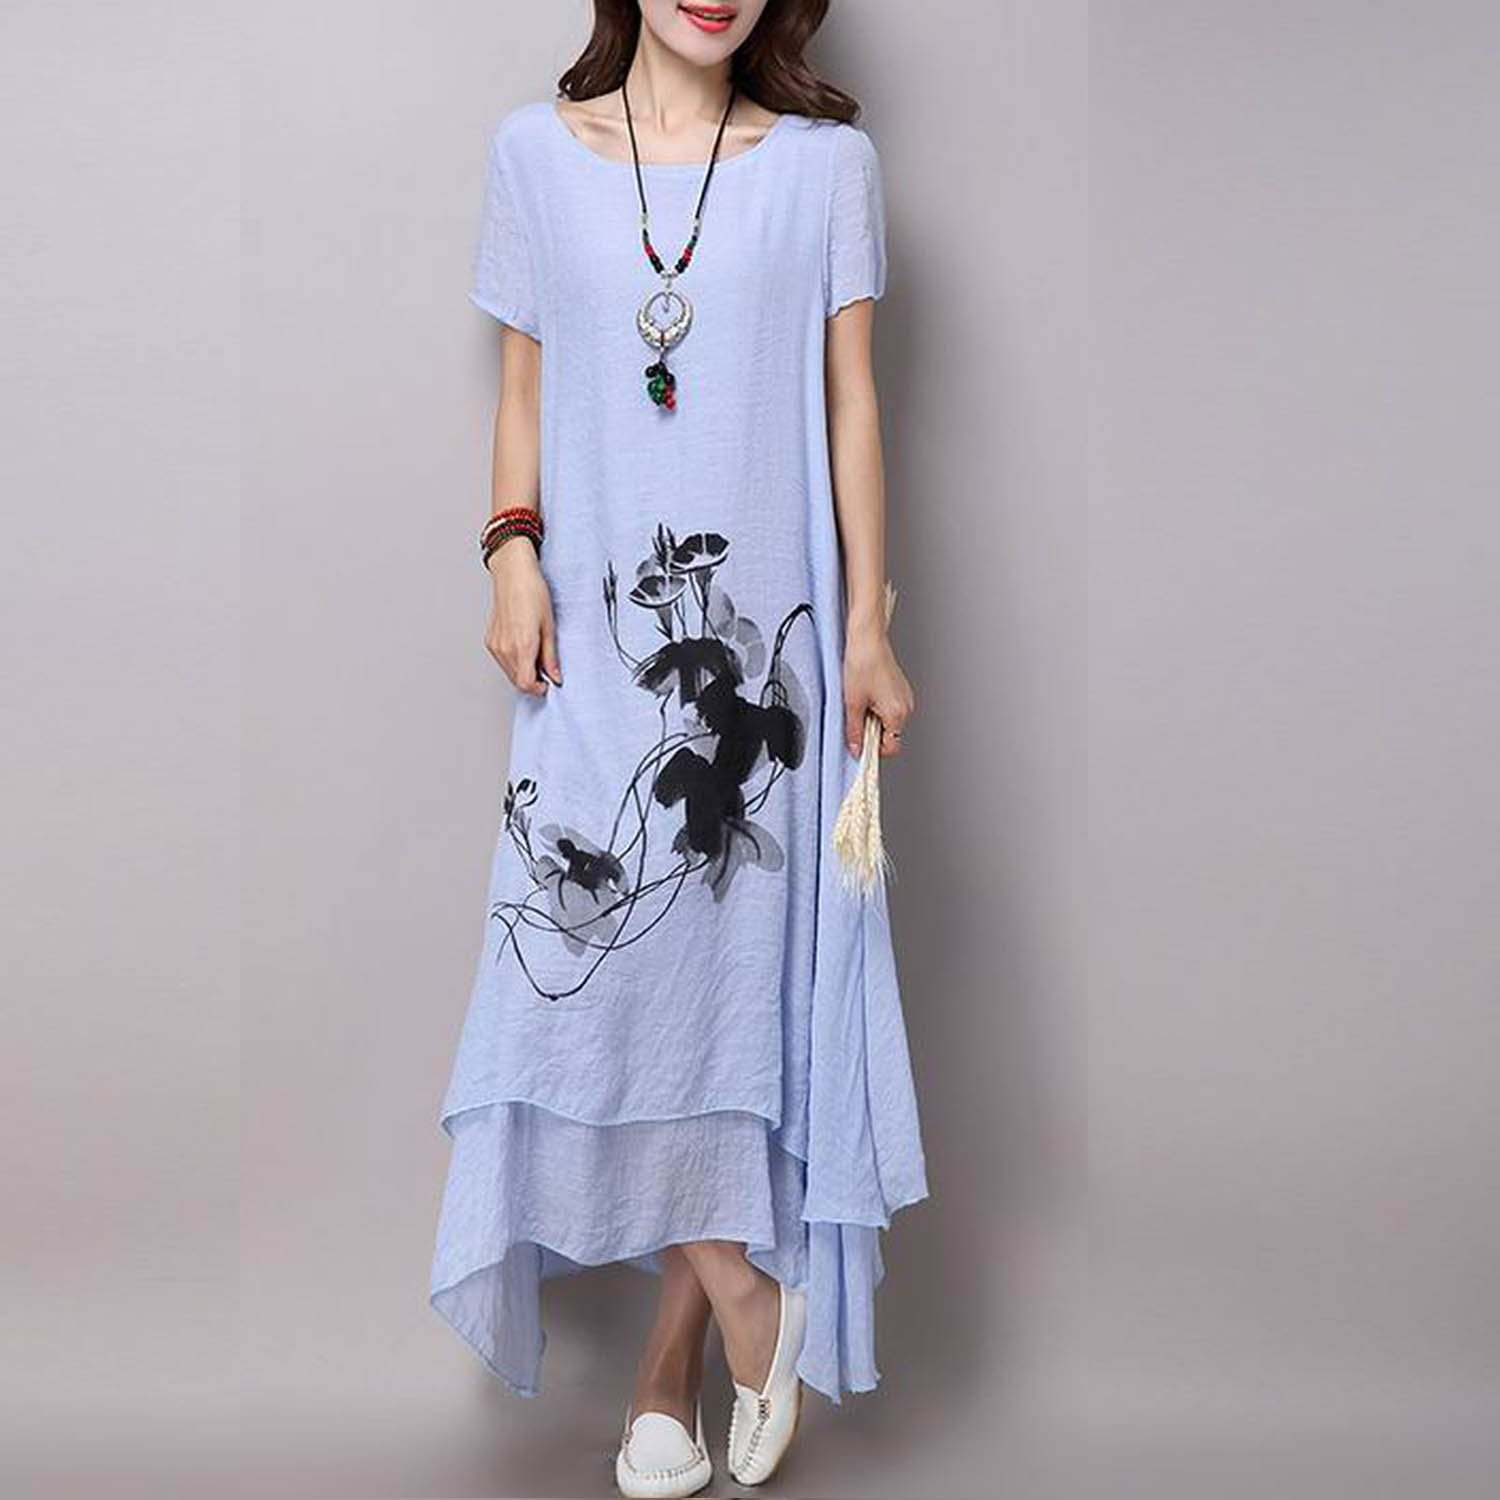 Unique-Shop fsize Vintage Print Women Casual Loose Long Summer Dress Vestidos Femininos Party 2017 Dresses at Amazon Womens Clothing store: